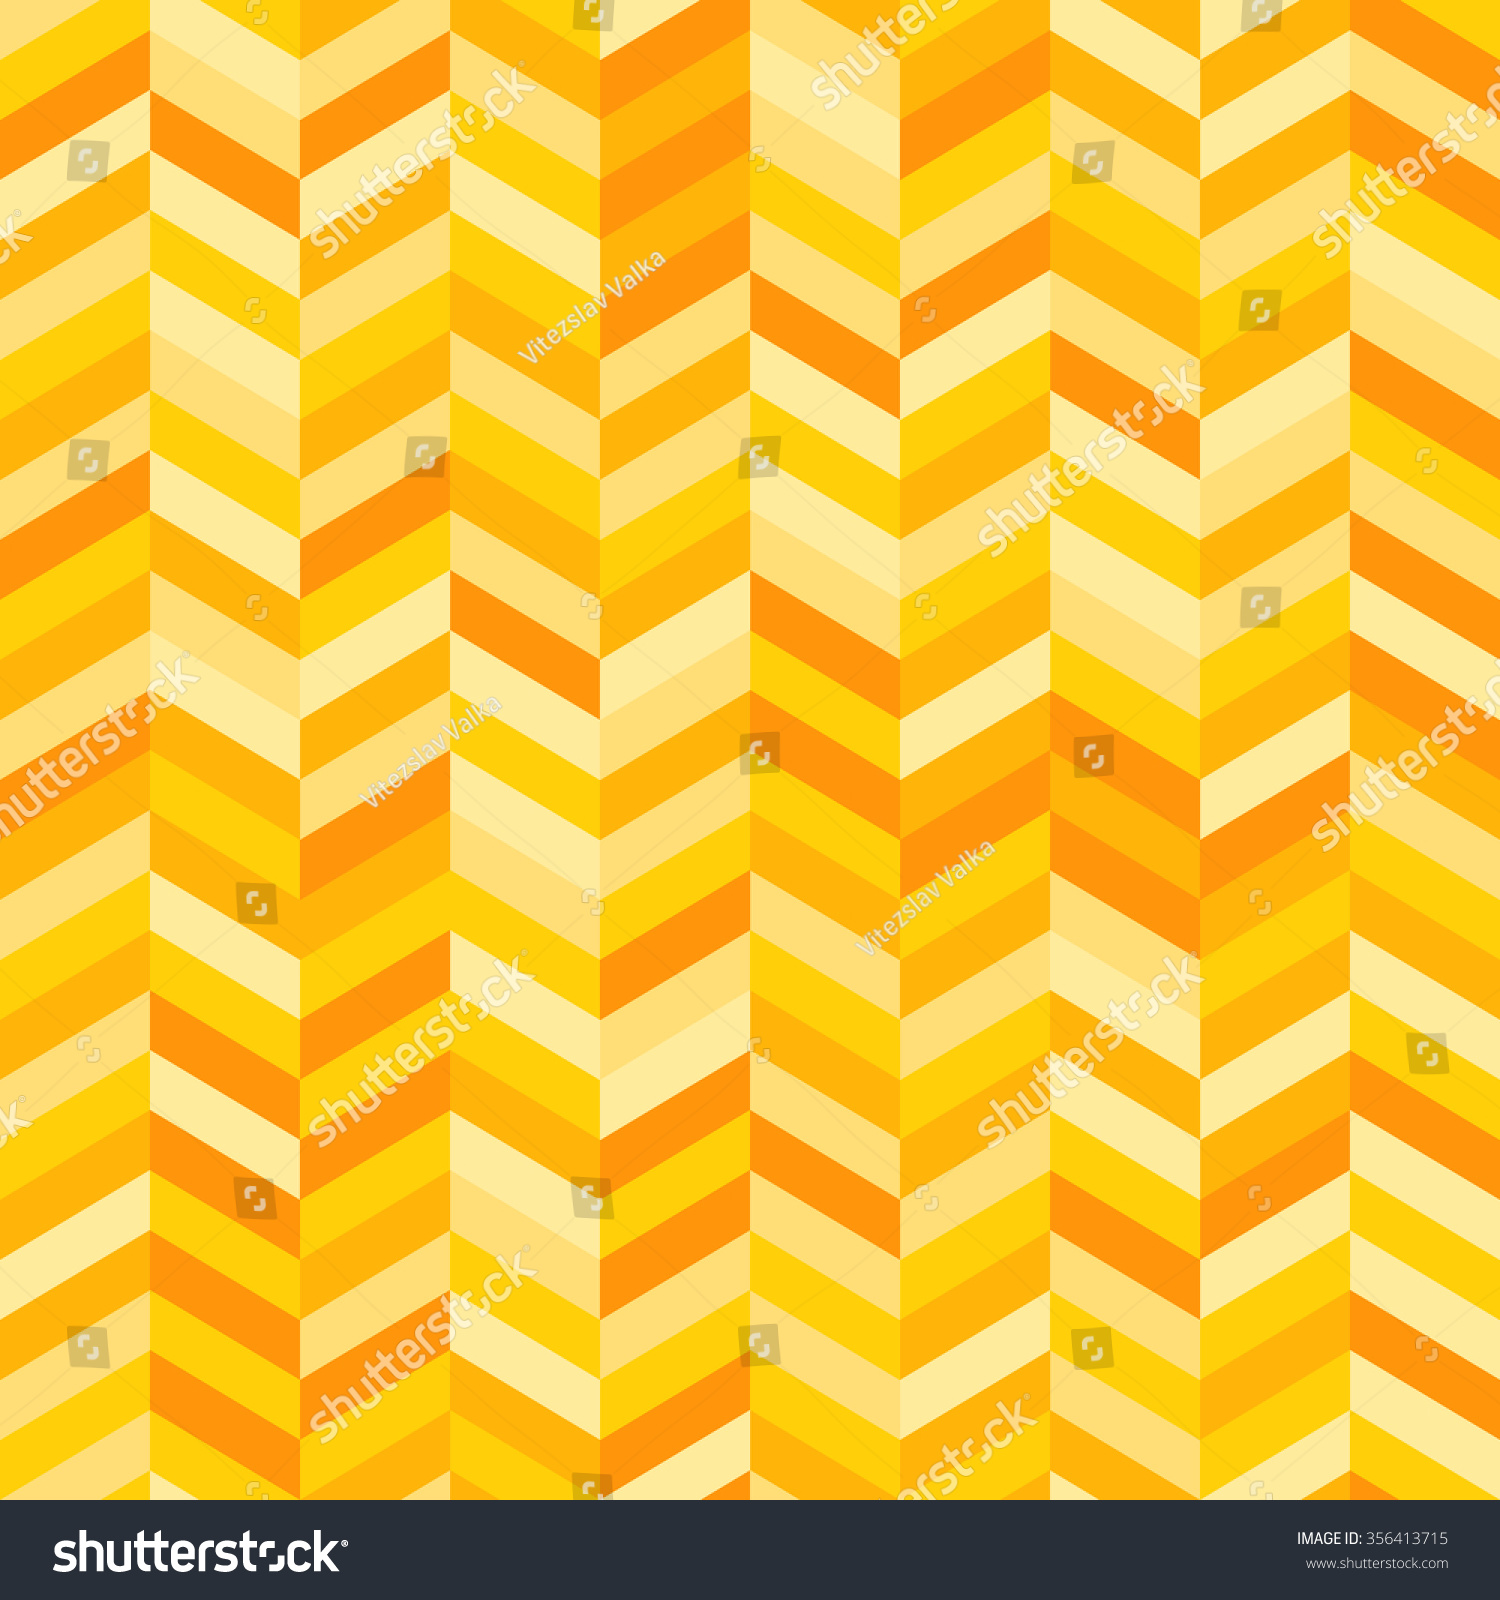 how to make different shades of yellow